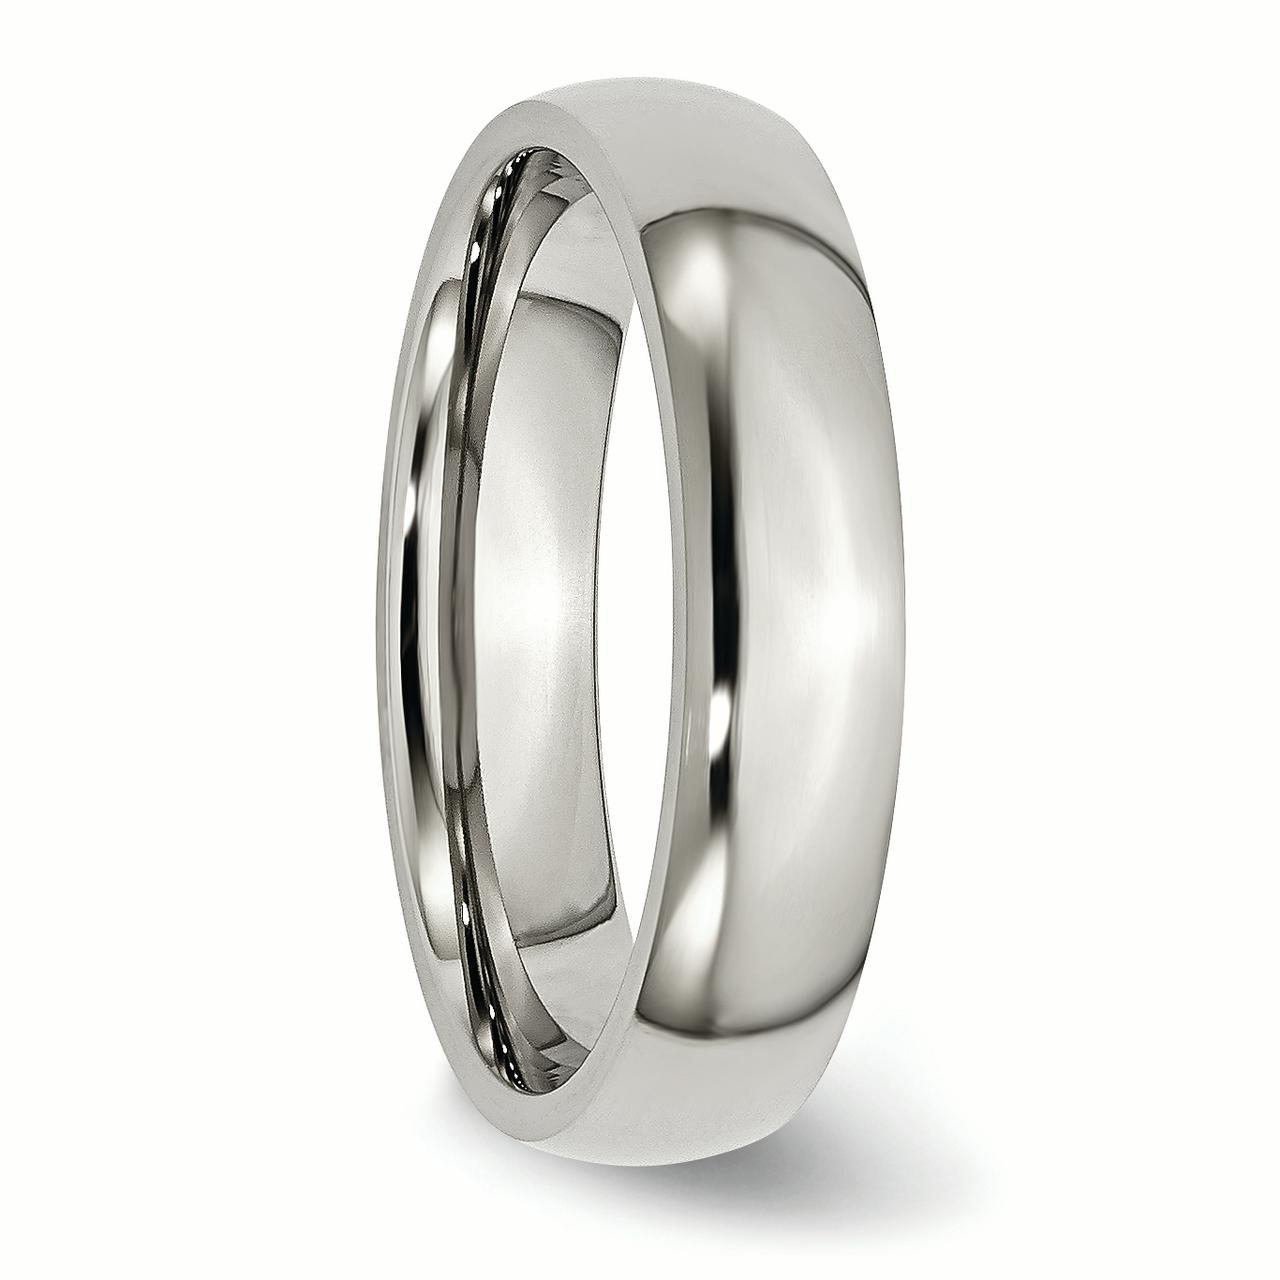 Stainless Steel 5mm Wedding Ring Band Size 8.00 Classic Domed Fashion Jewelry Gifts For Women For Her - image 5 de 6